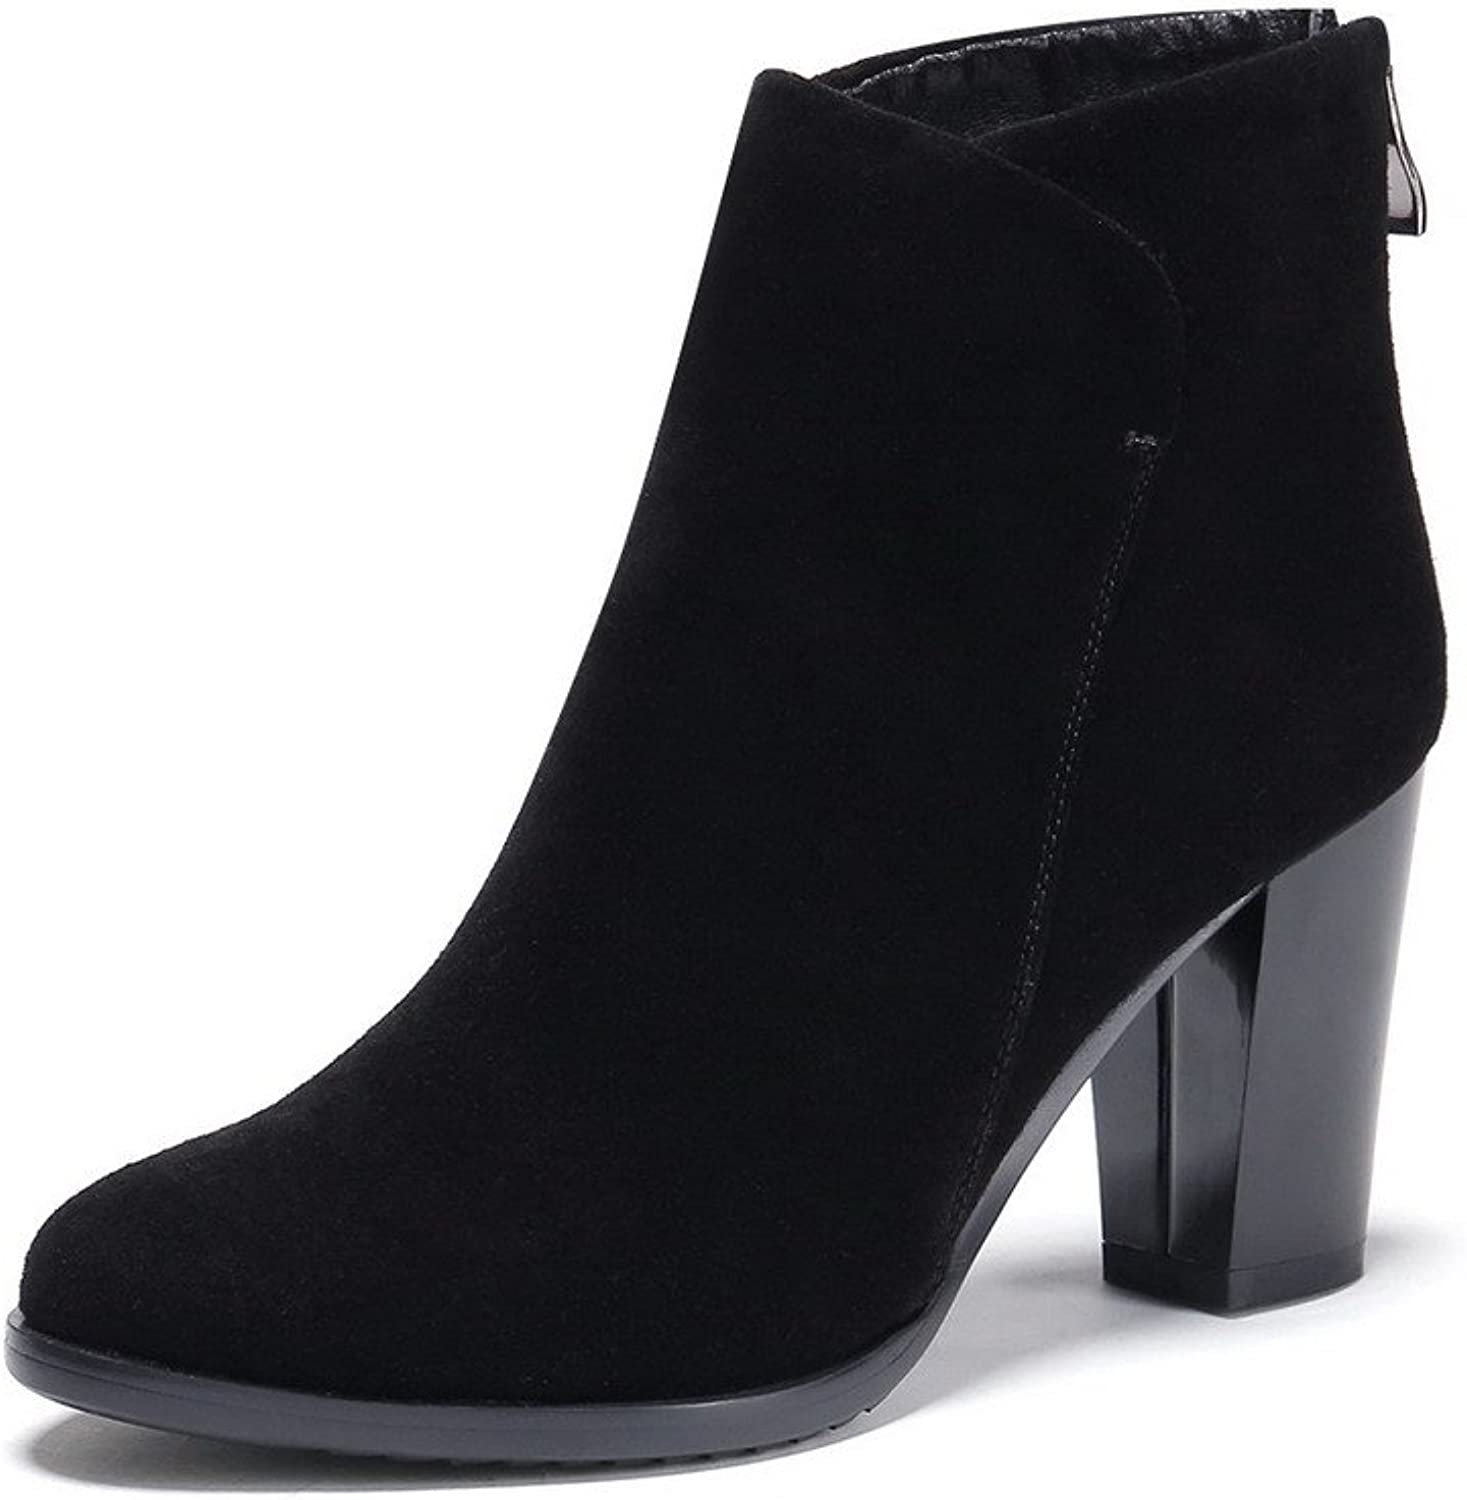 AmoonyFashion Women's Round-Toe Closed-Toe High-Heels Boots with Back Zipper